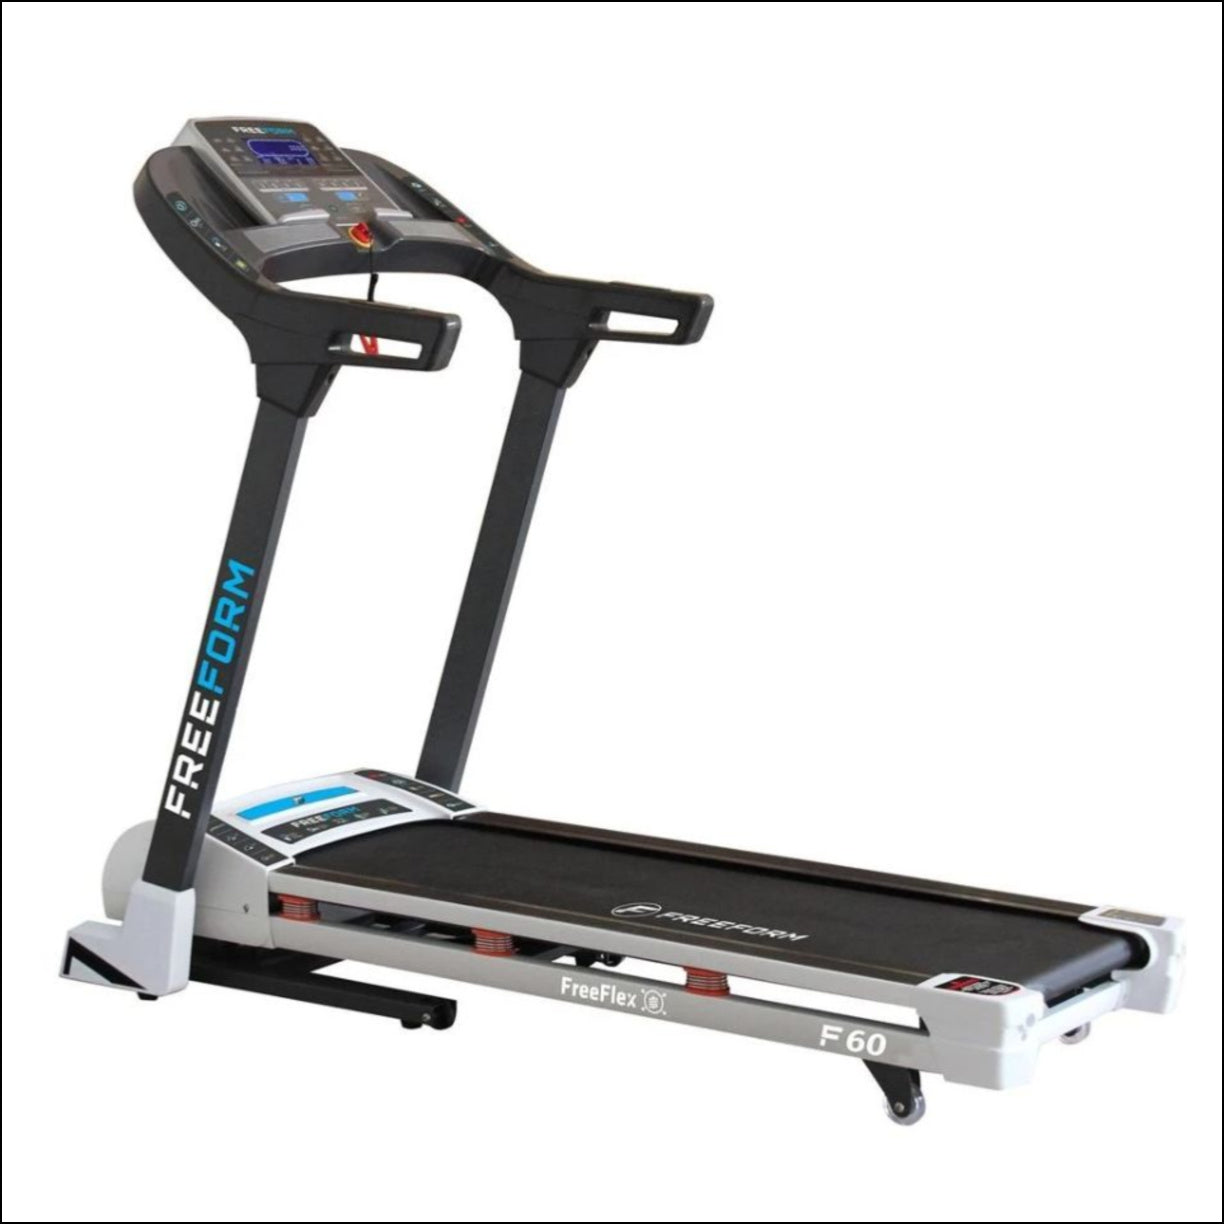 The FreeForm F60 Pro Runner Treadmill has all the traditional treadmill features and is loaded with modern extras! An excellent choice for those looking for a hassle-free, durable, home treadmill! Take your fitness to the next level with the 2.5 Continuous Horse Power HiTorque Commercial Motor and range of preset programs along with a top speed of 18/km/hr.